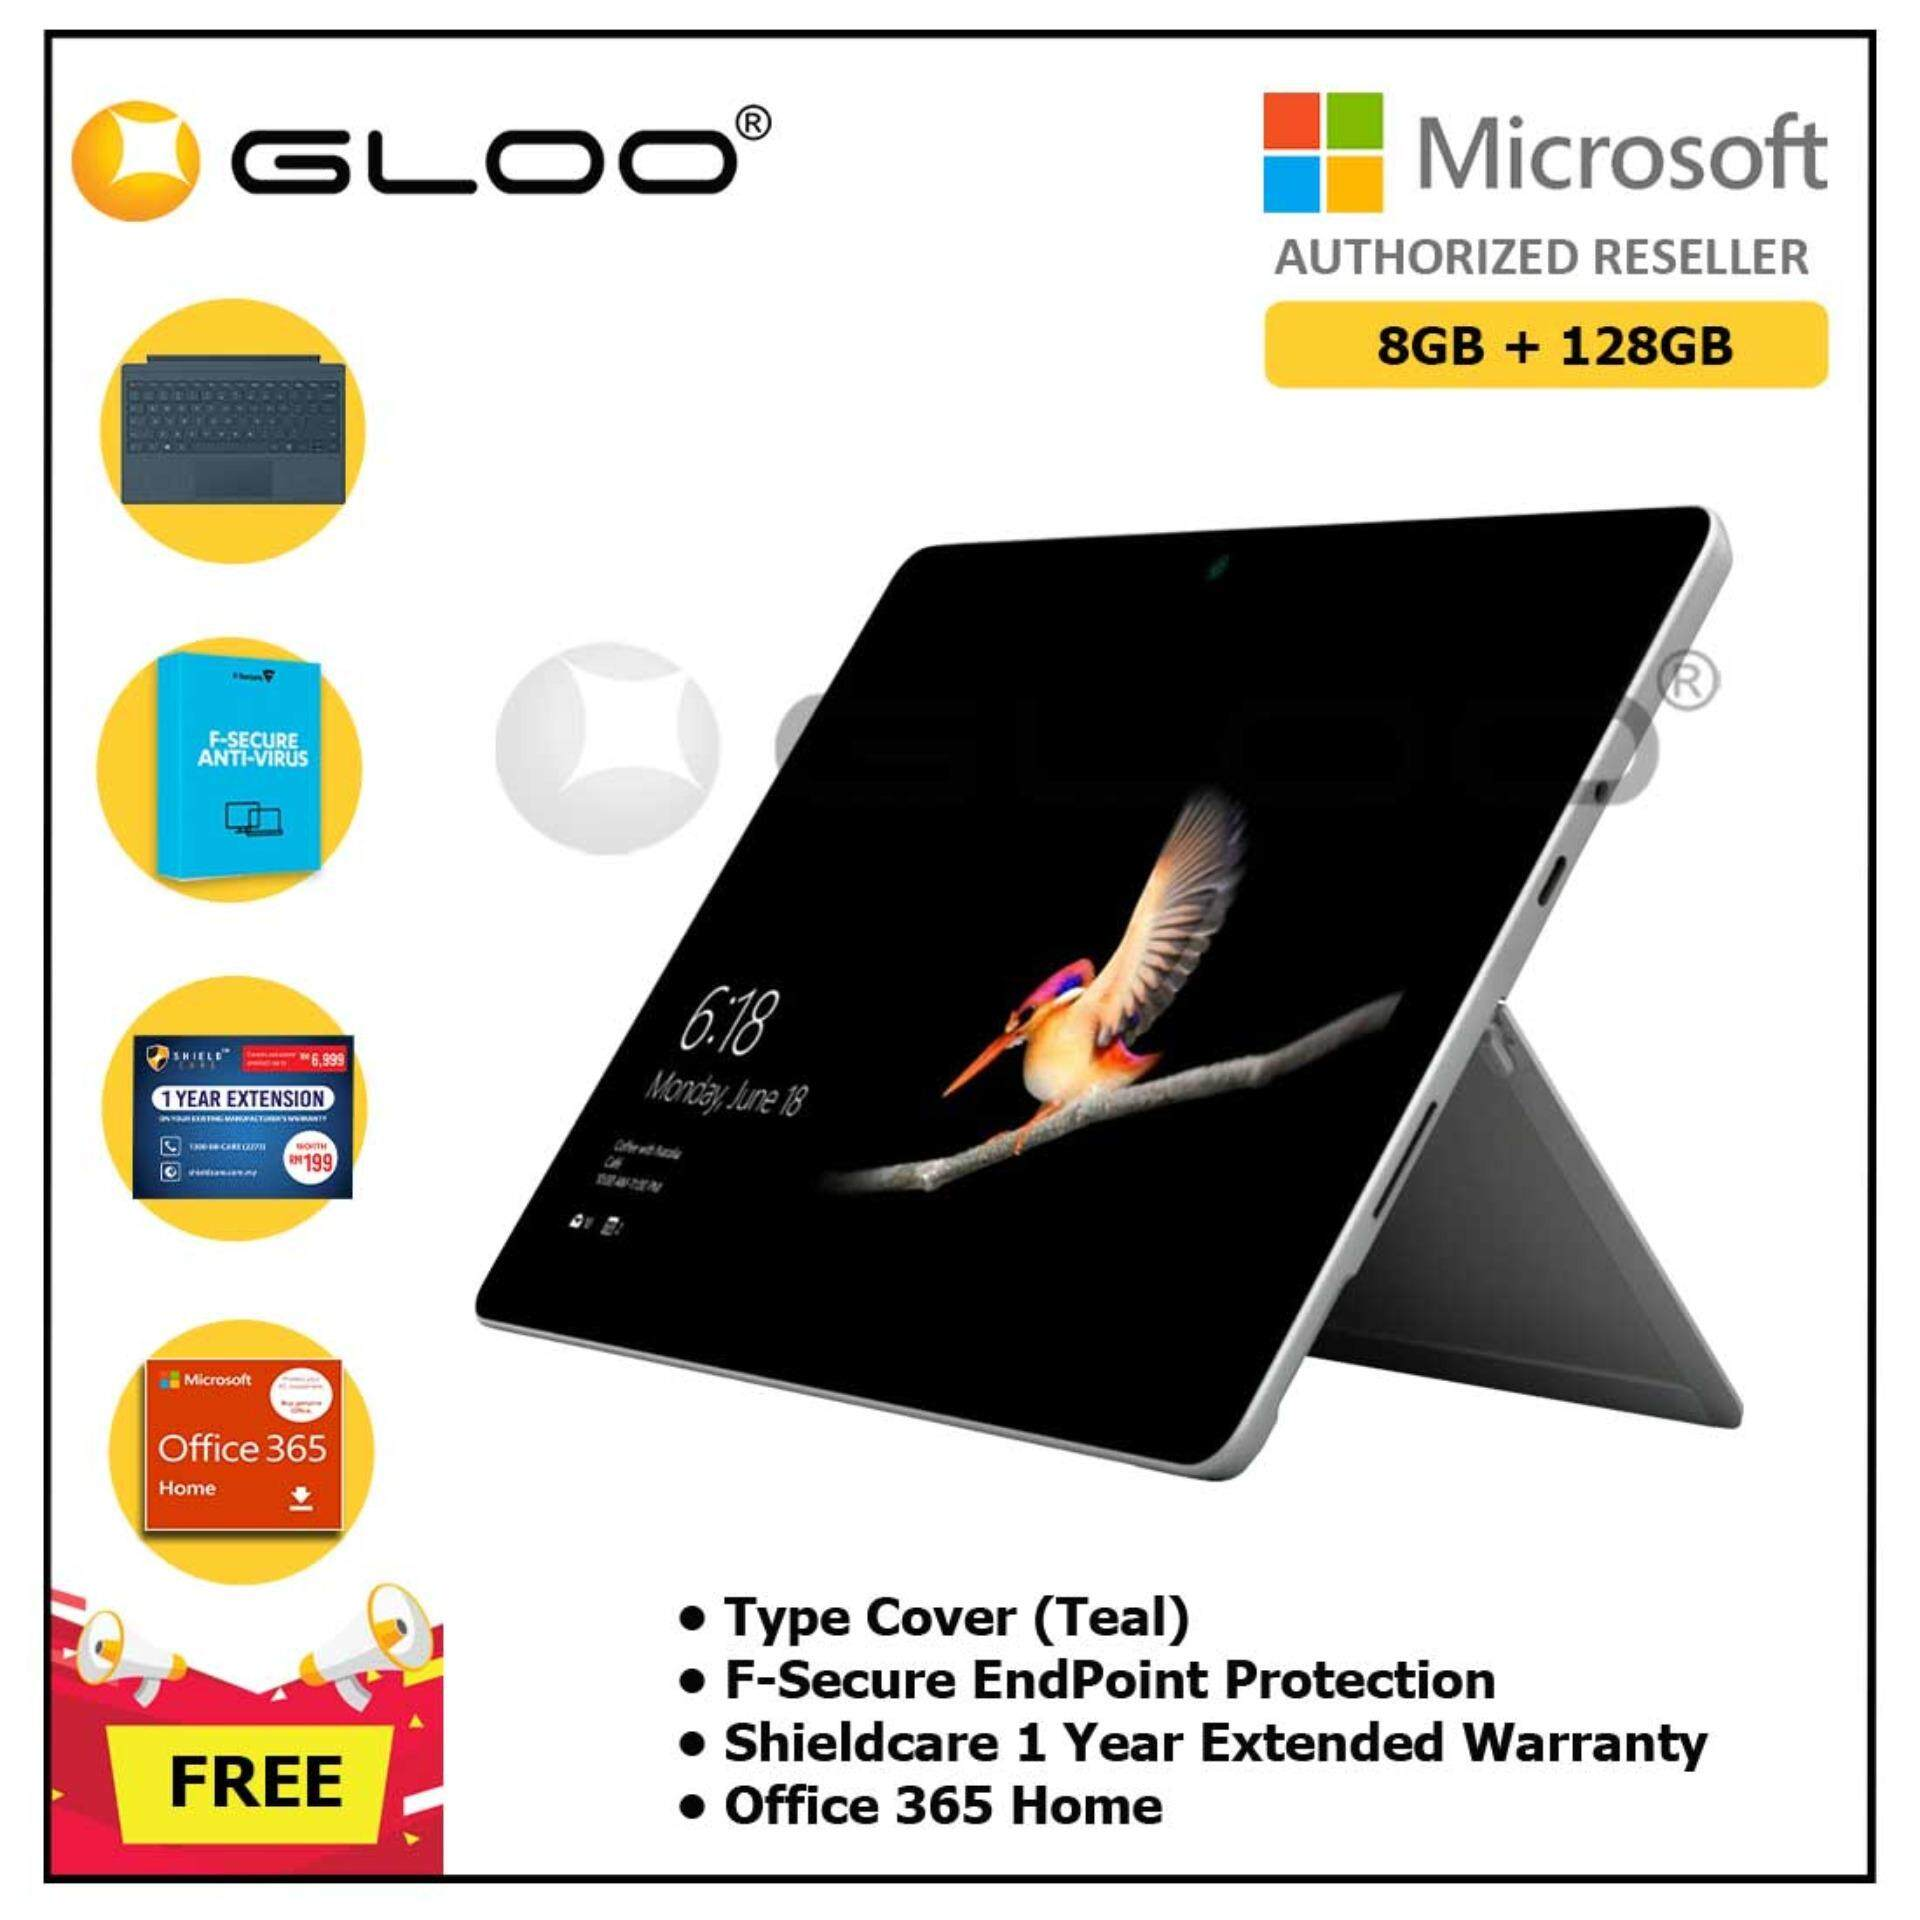 Surface Go Y/8GB 128GB + Surface Go Type Cover Teal + Shieldcare 1 Year Extended Warranty + F-Secure EndPoint Protection + Office 365 Home ESD